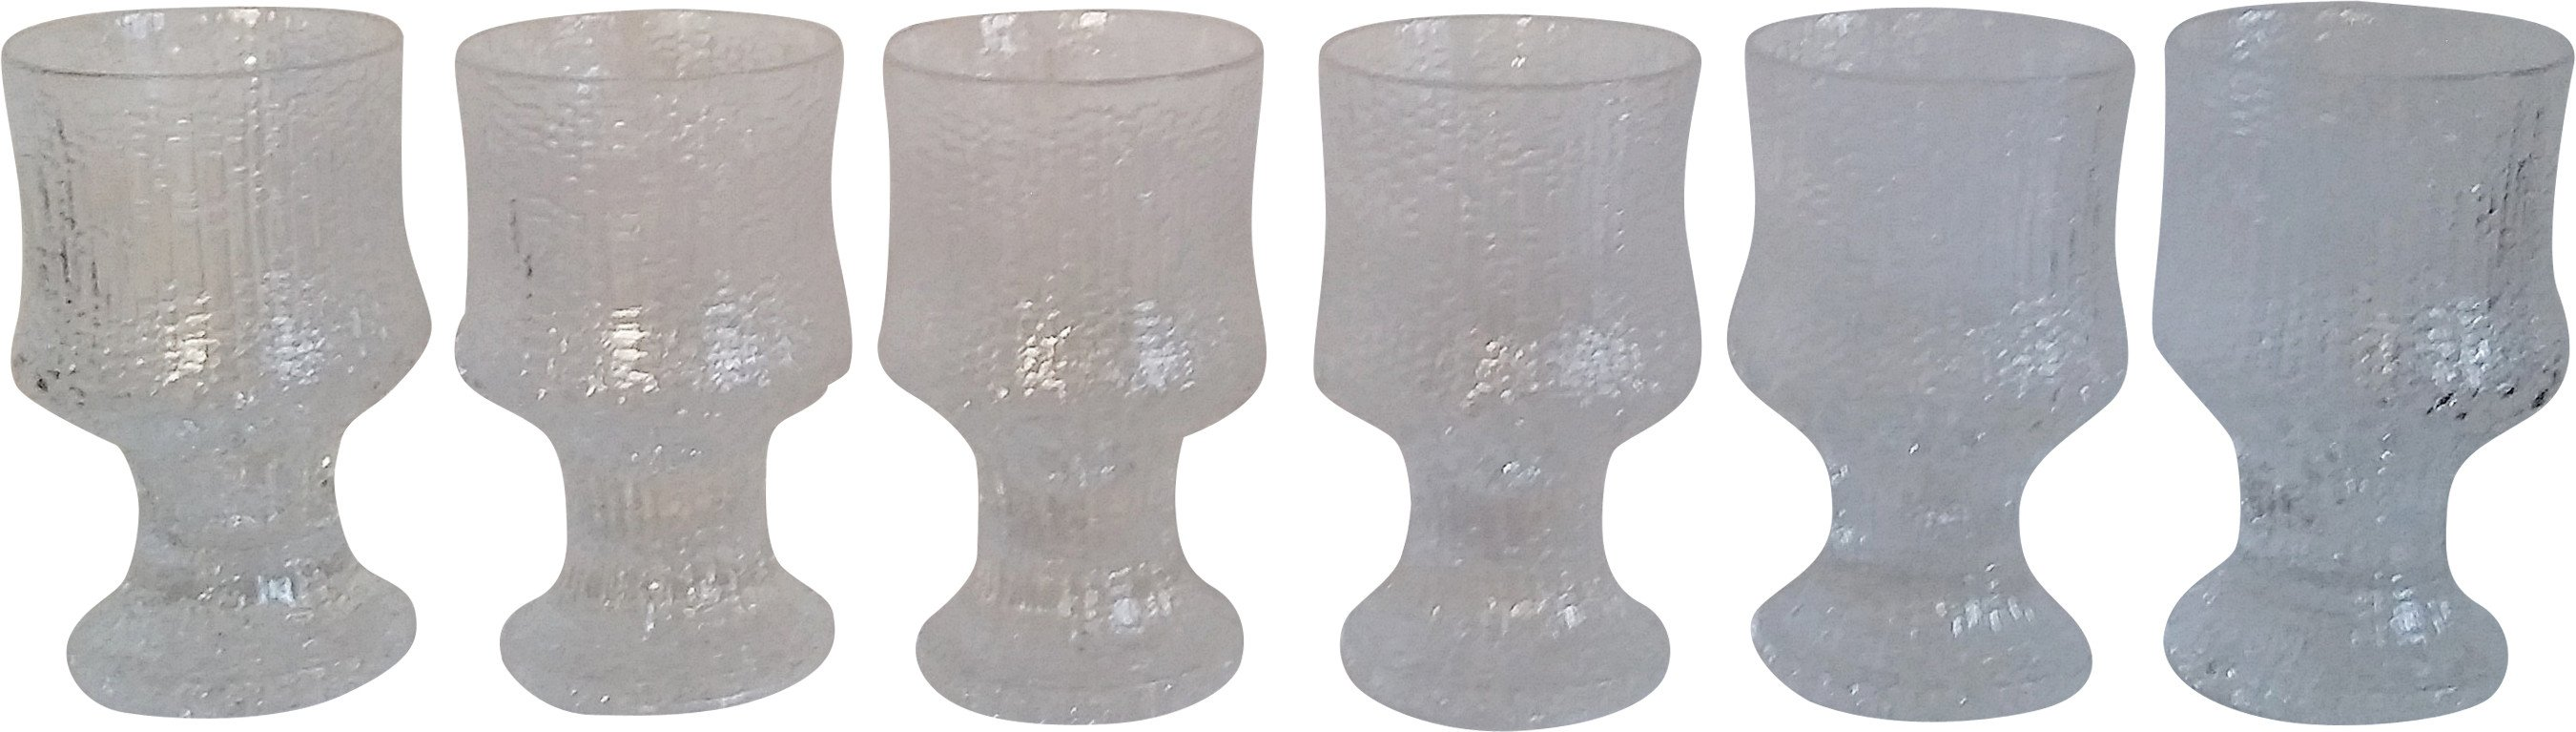 Set of Six Glasses by T. Wirkkala, Littala, Finland, 1960s